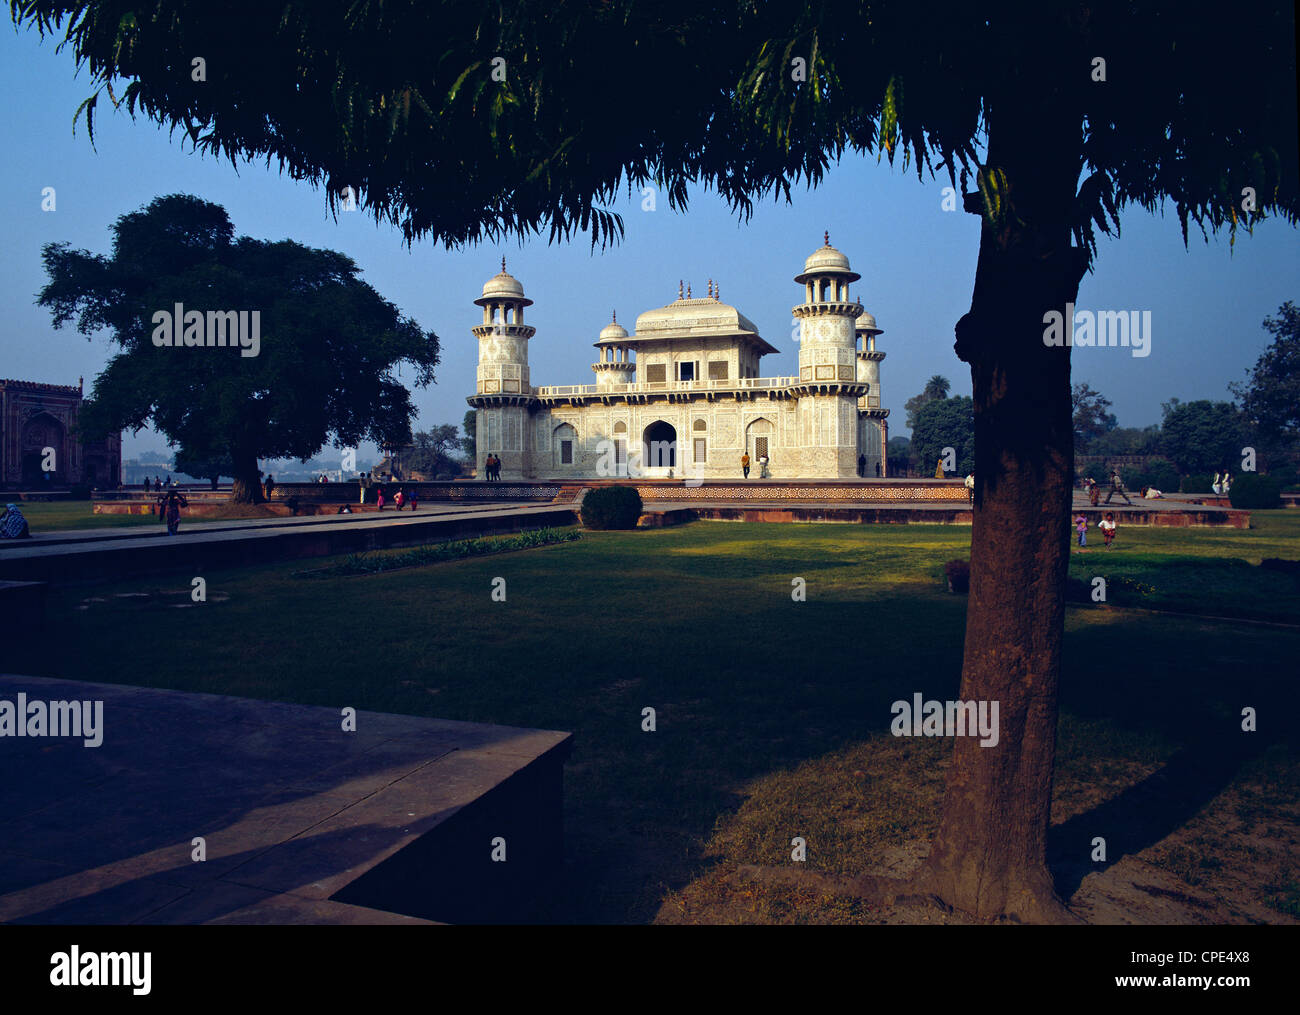 The Itmad ud Daulah or Little Taj - the tomb of Mirza Ghiyas Beg, Agra, northern India. Stock Photo